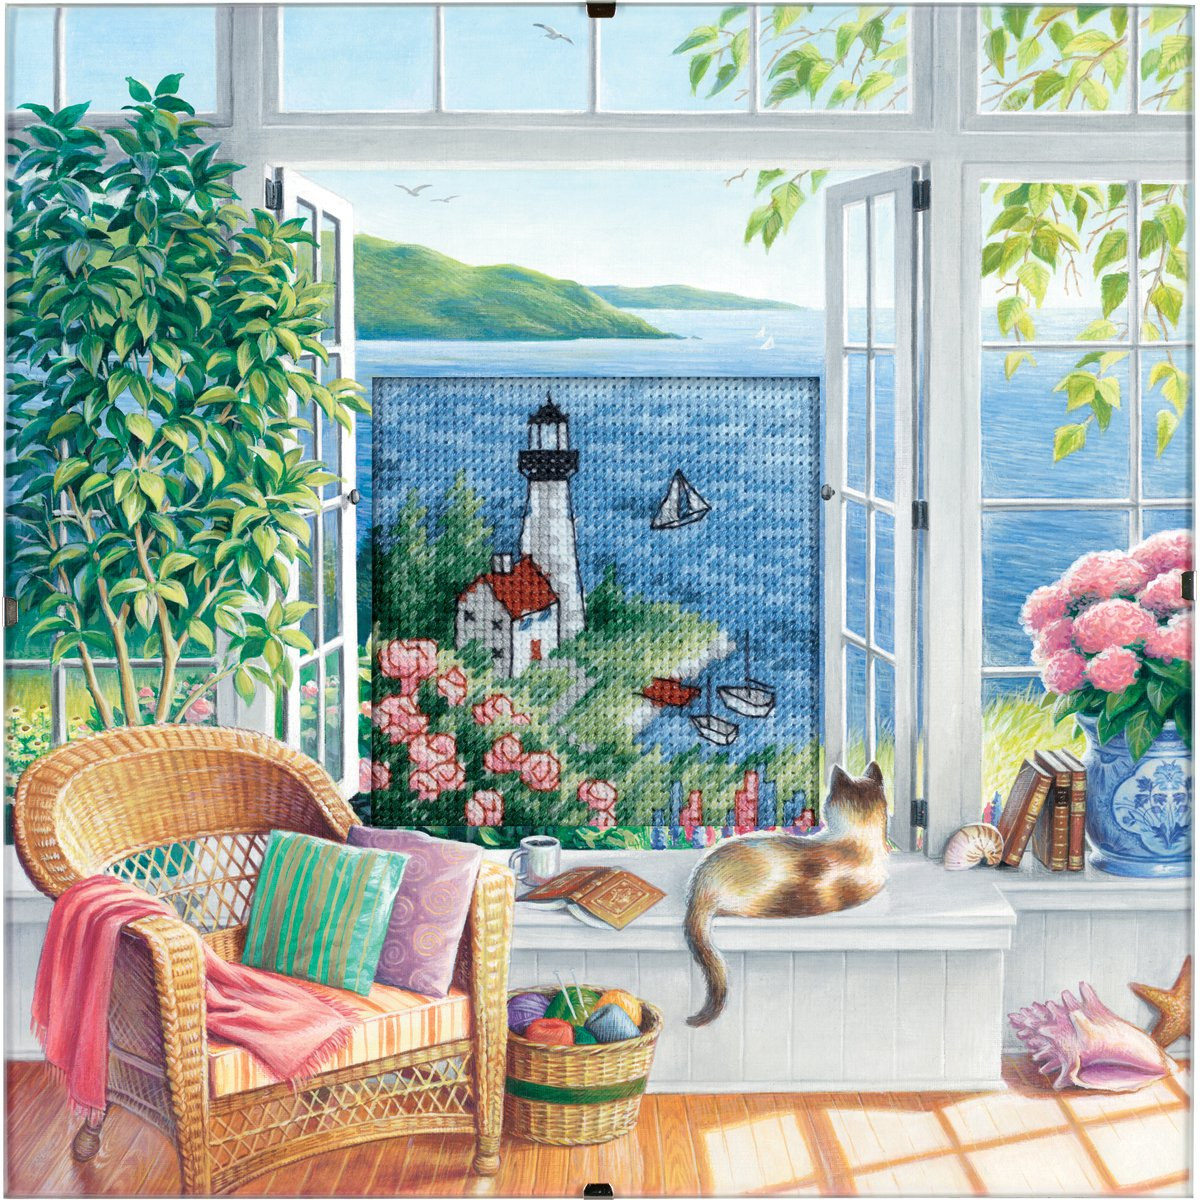 Dimensions Needlecrafts Counted Cross Stitch, Beach Tranquility 73262